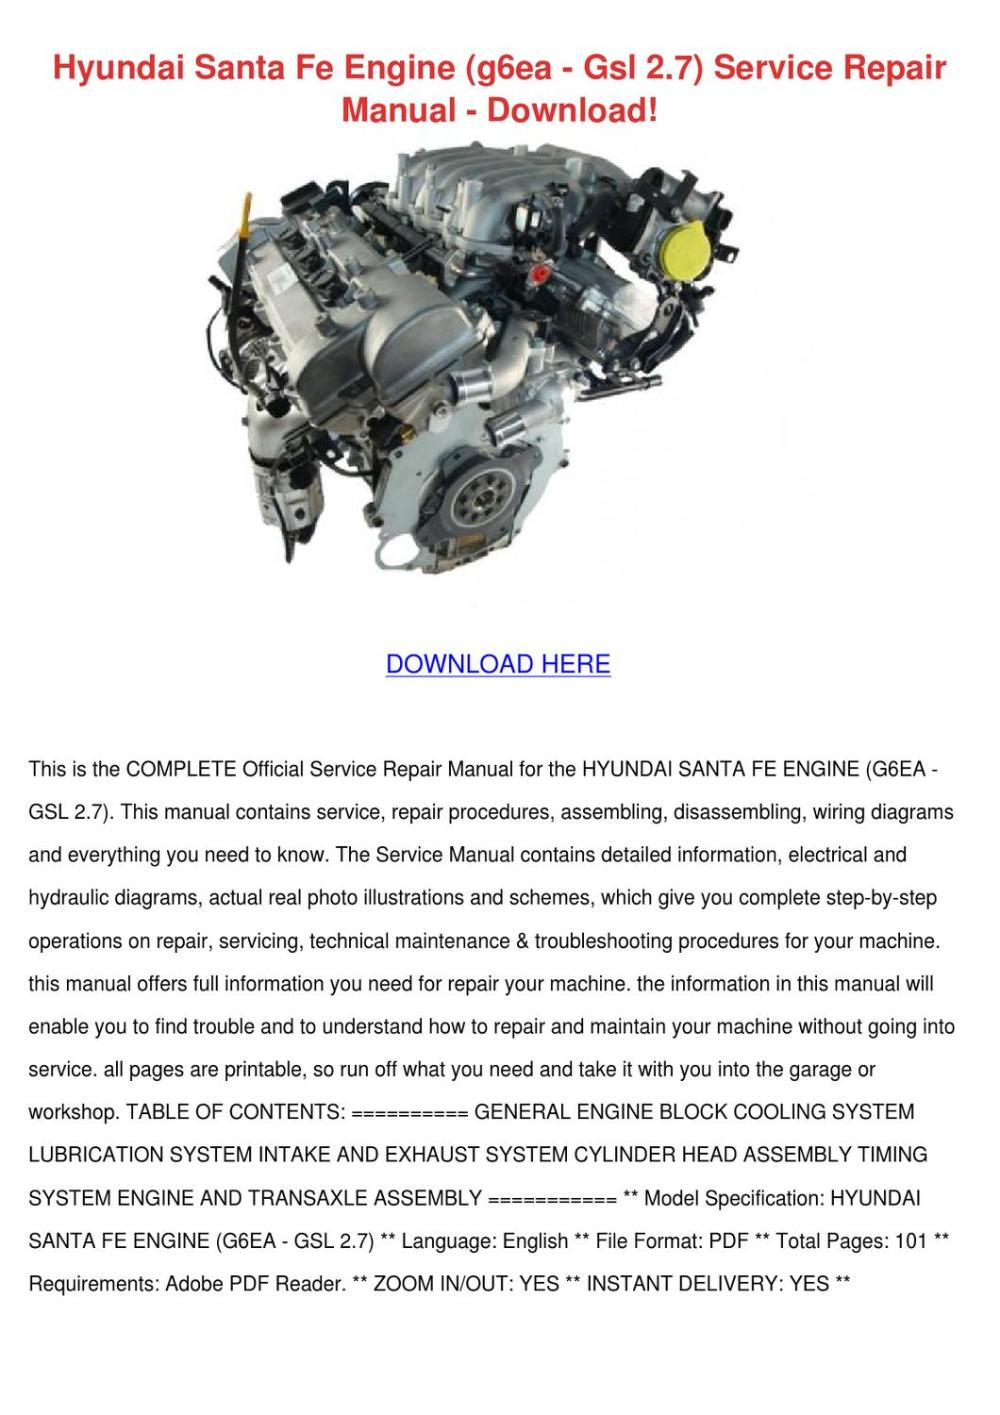 medium resolution of hyundai santa fe engine g6ea gsl 27 service r by antwanworden issuu 2001 santa fe wiring schematic